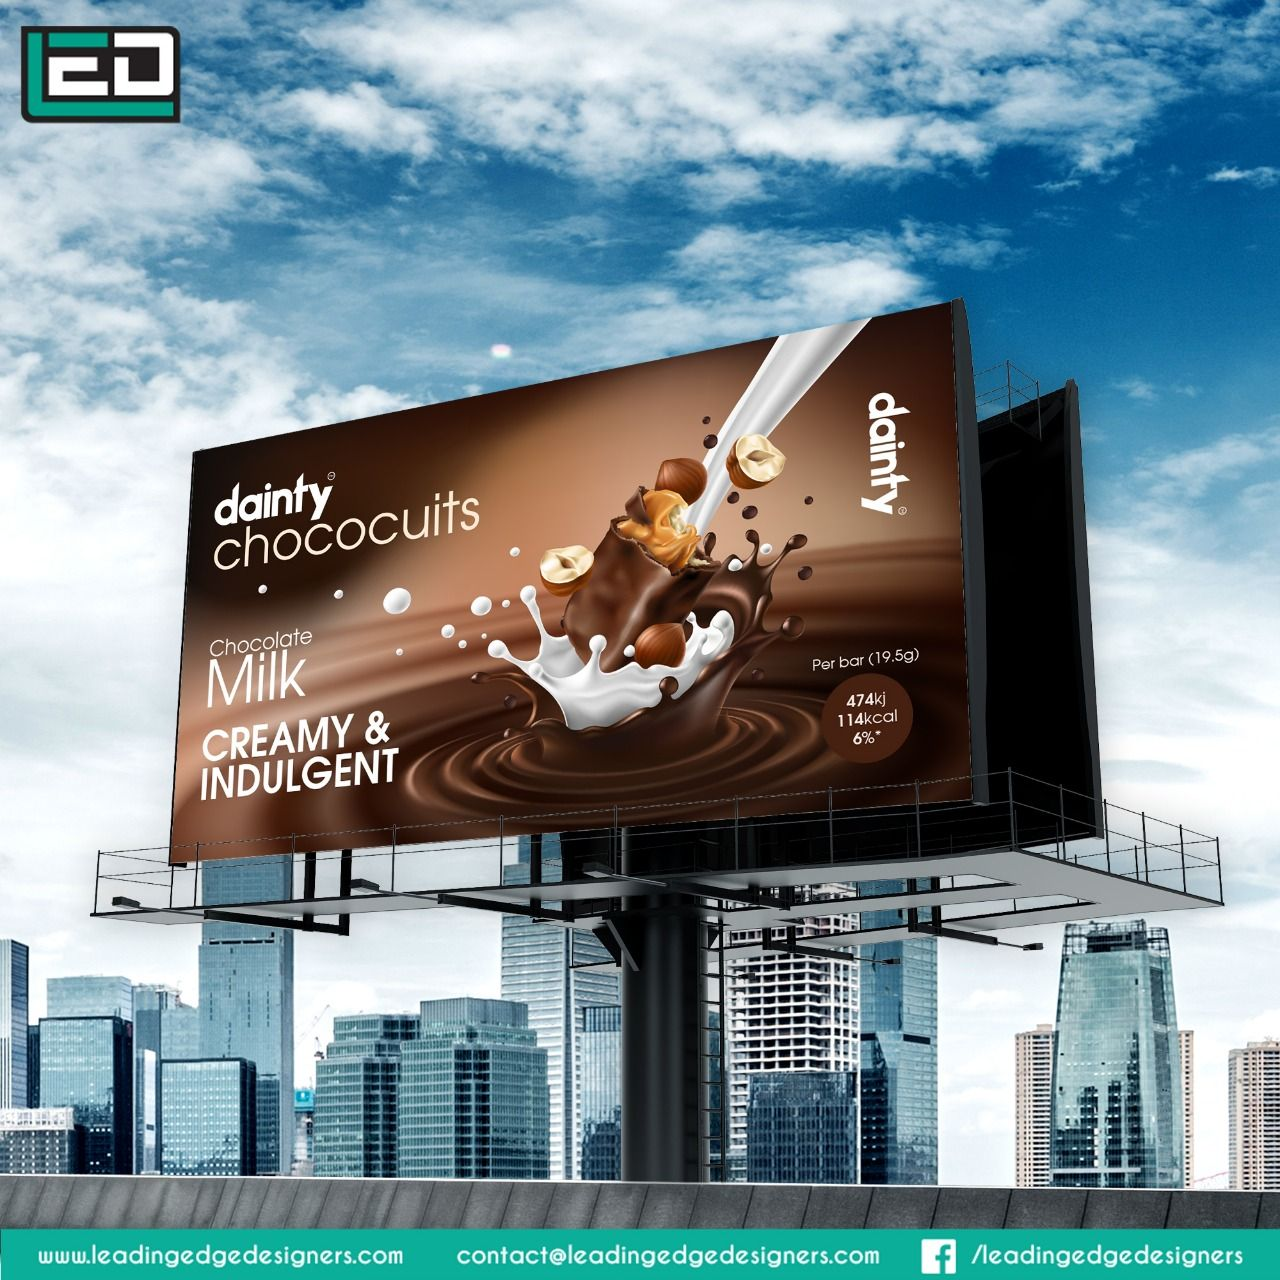 Billboard Designs Sample Creativebillboarddesign Creativedesigns Awesomebillboarddesign Billboardadver Billboard Design Outdoor Advertising Hoarding Design